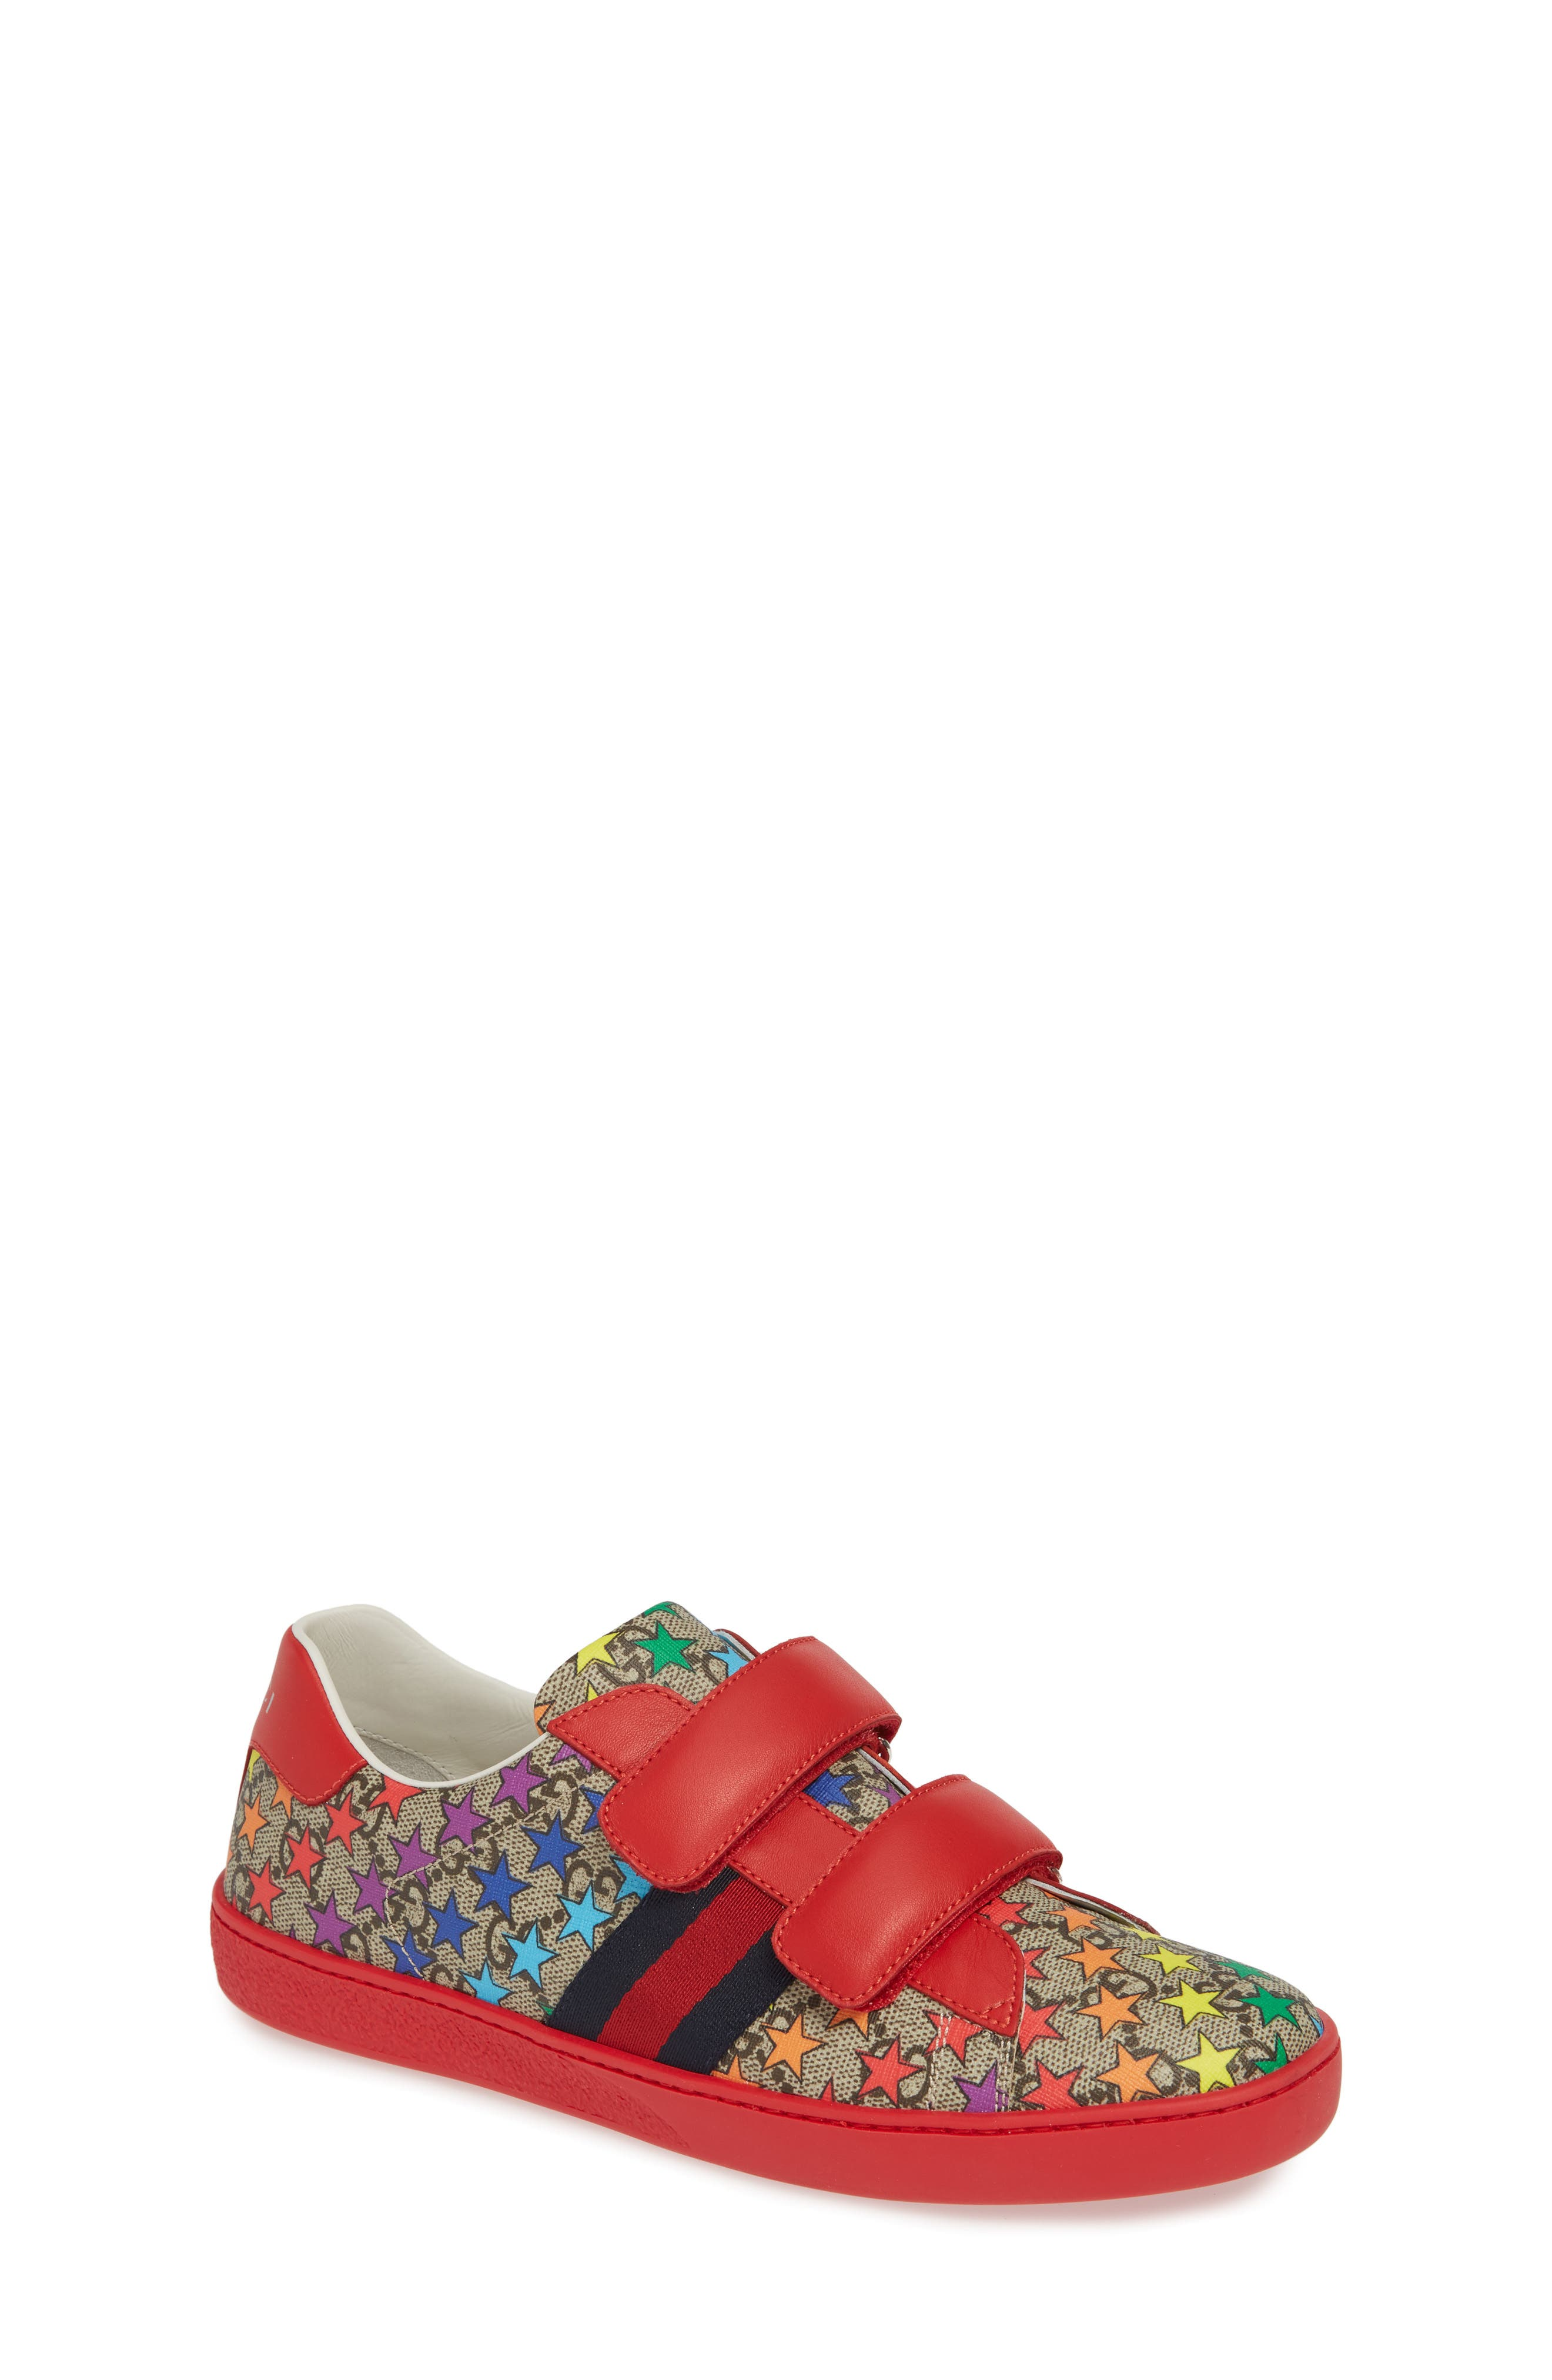 GUCCI, New Ace Sneaker, Main thumbnail 1, color, RED/ BEIGE/ EBONY